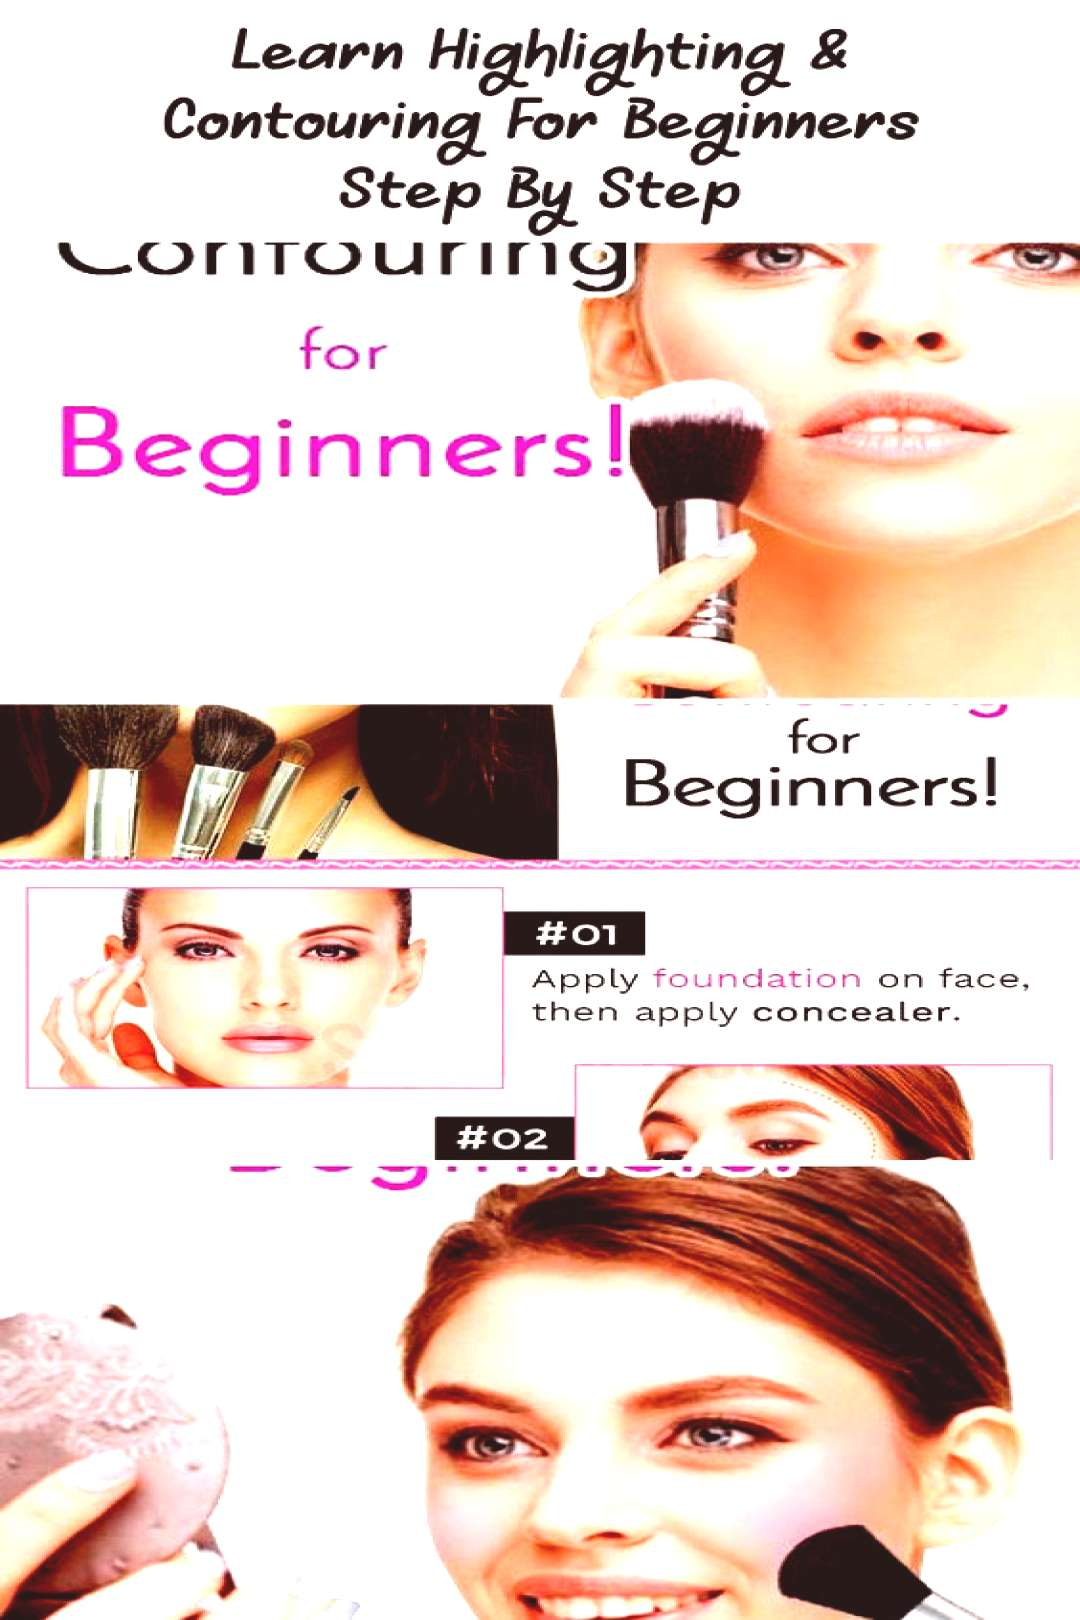 Highlighting, contouring for beginners ... ,  Highlighting, contouring for beginners ... ,